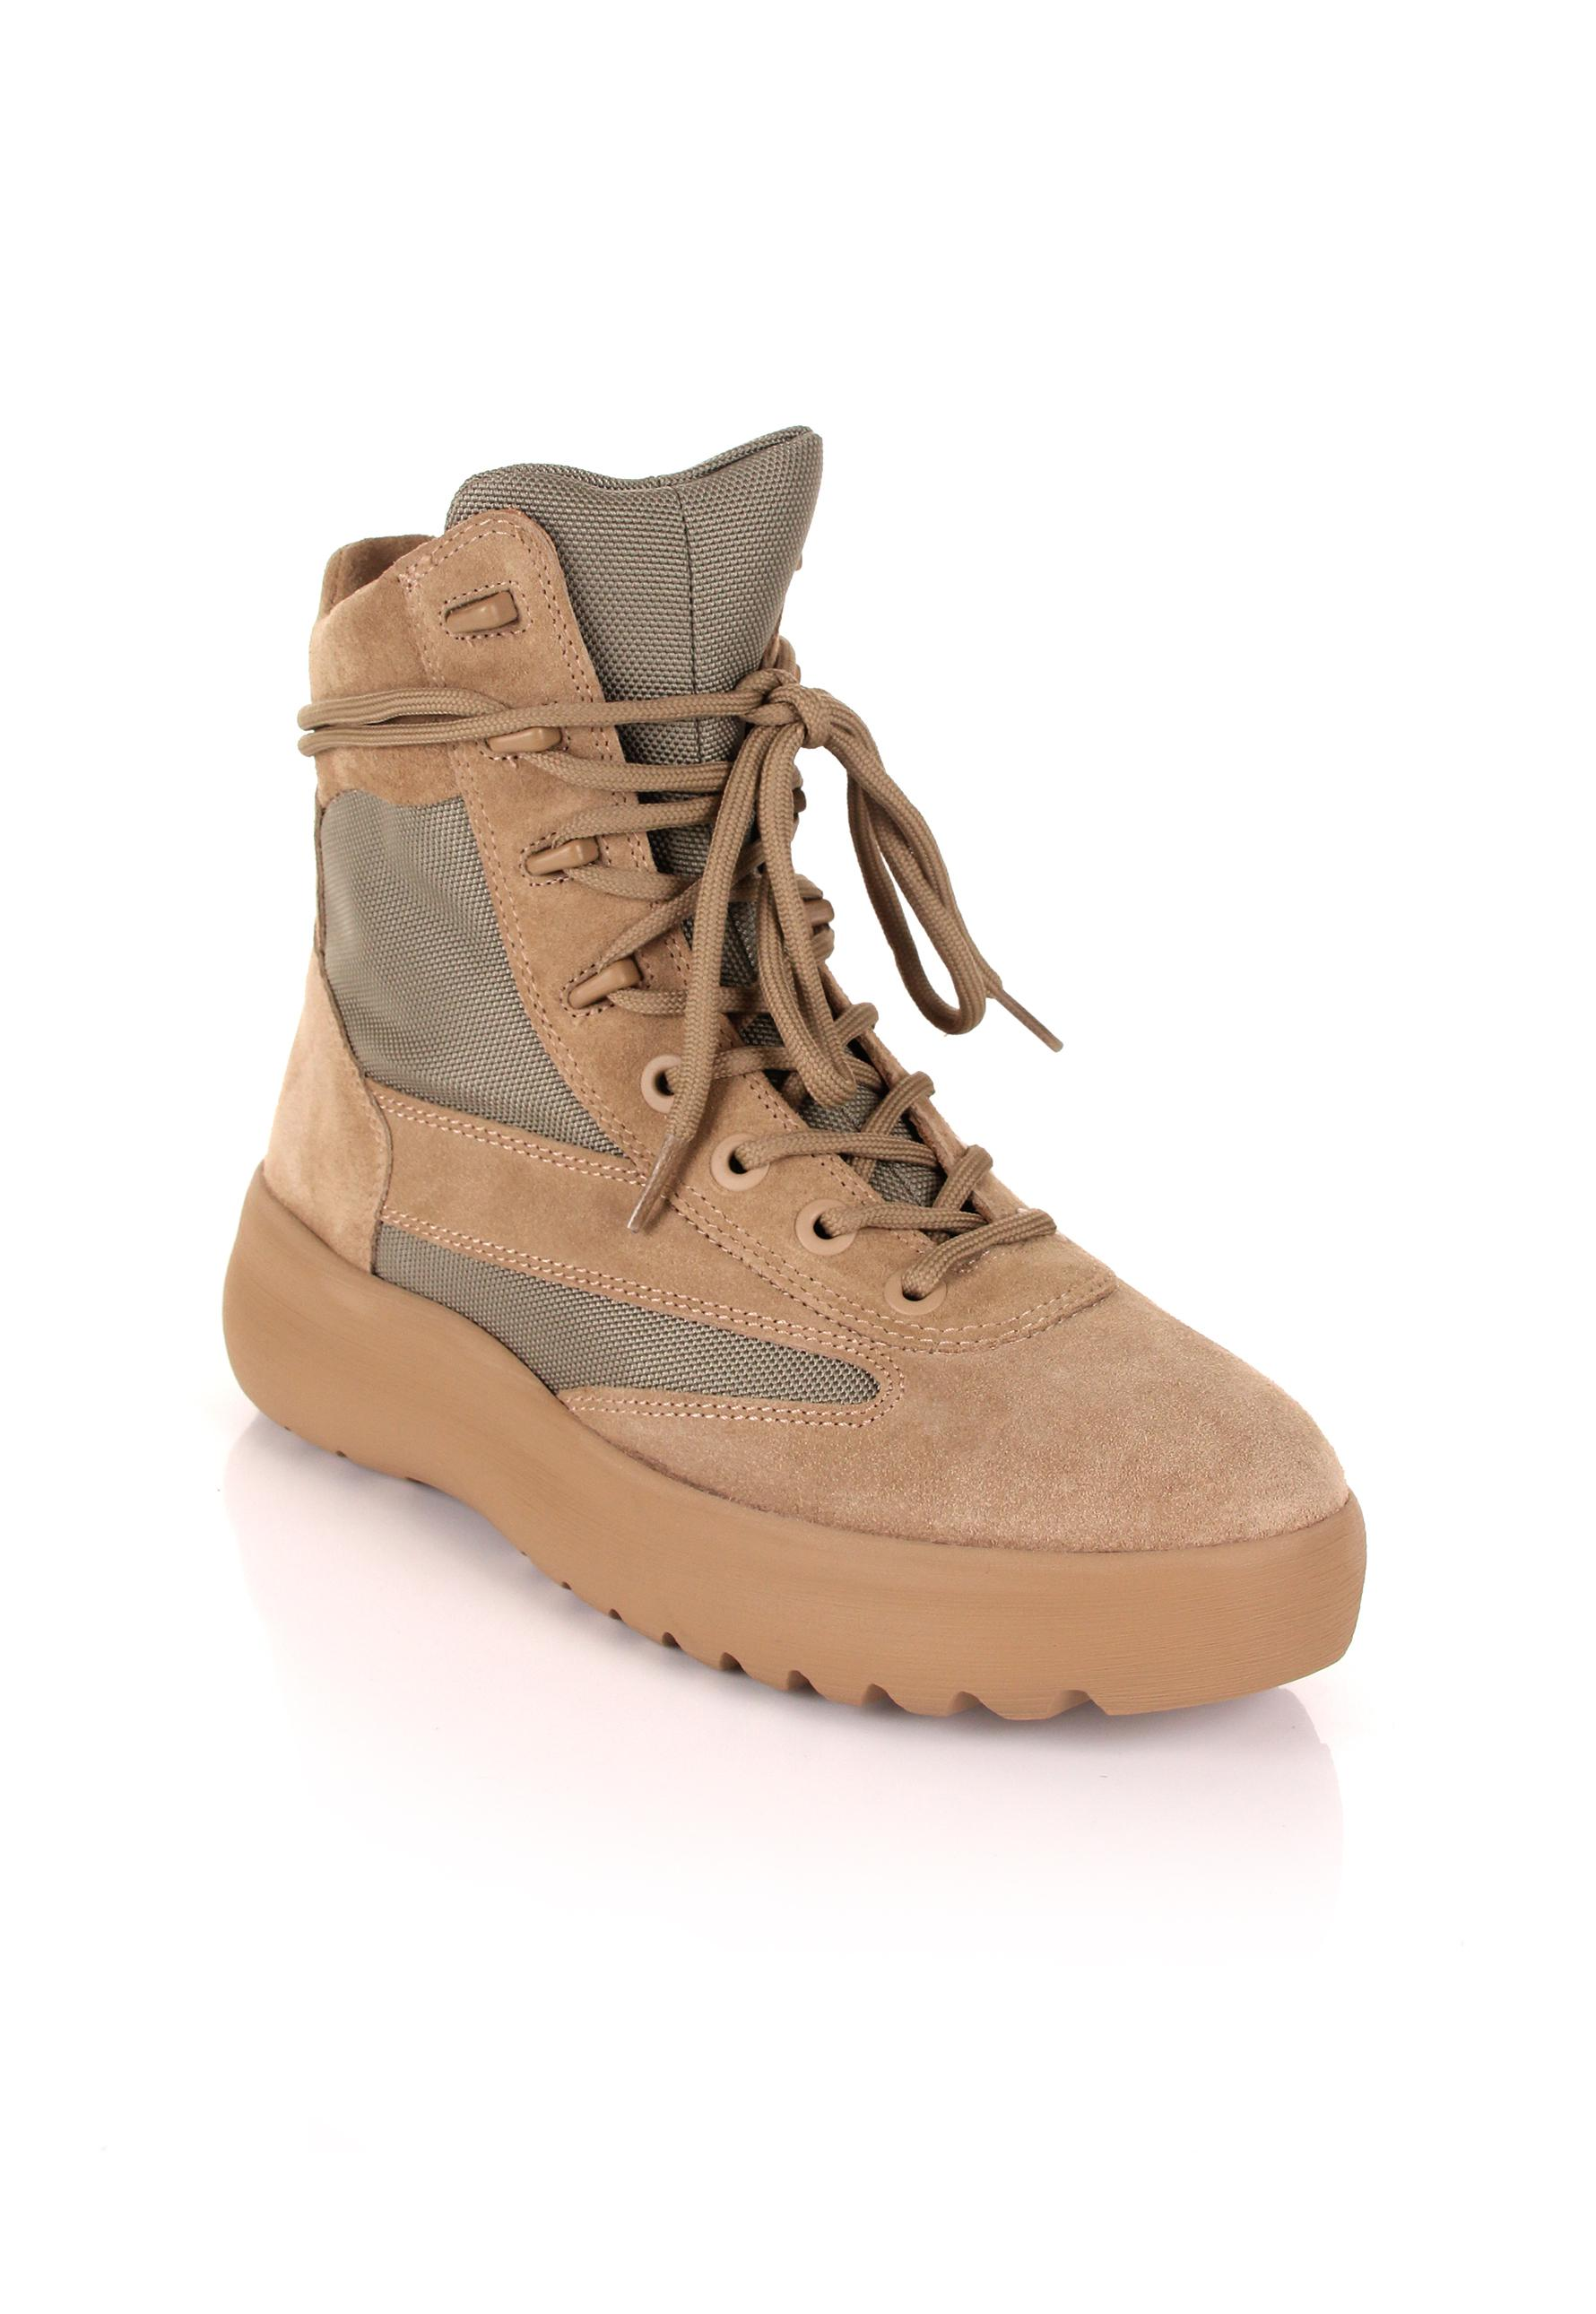 c8dfd52db9f3c Lyst - Yeezy Season 5 Military Boots Taupe in Brown for Men